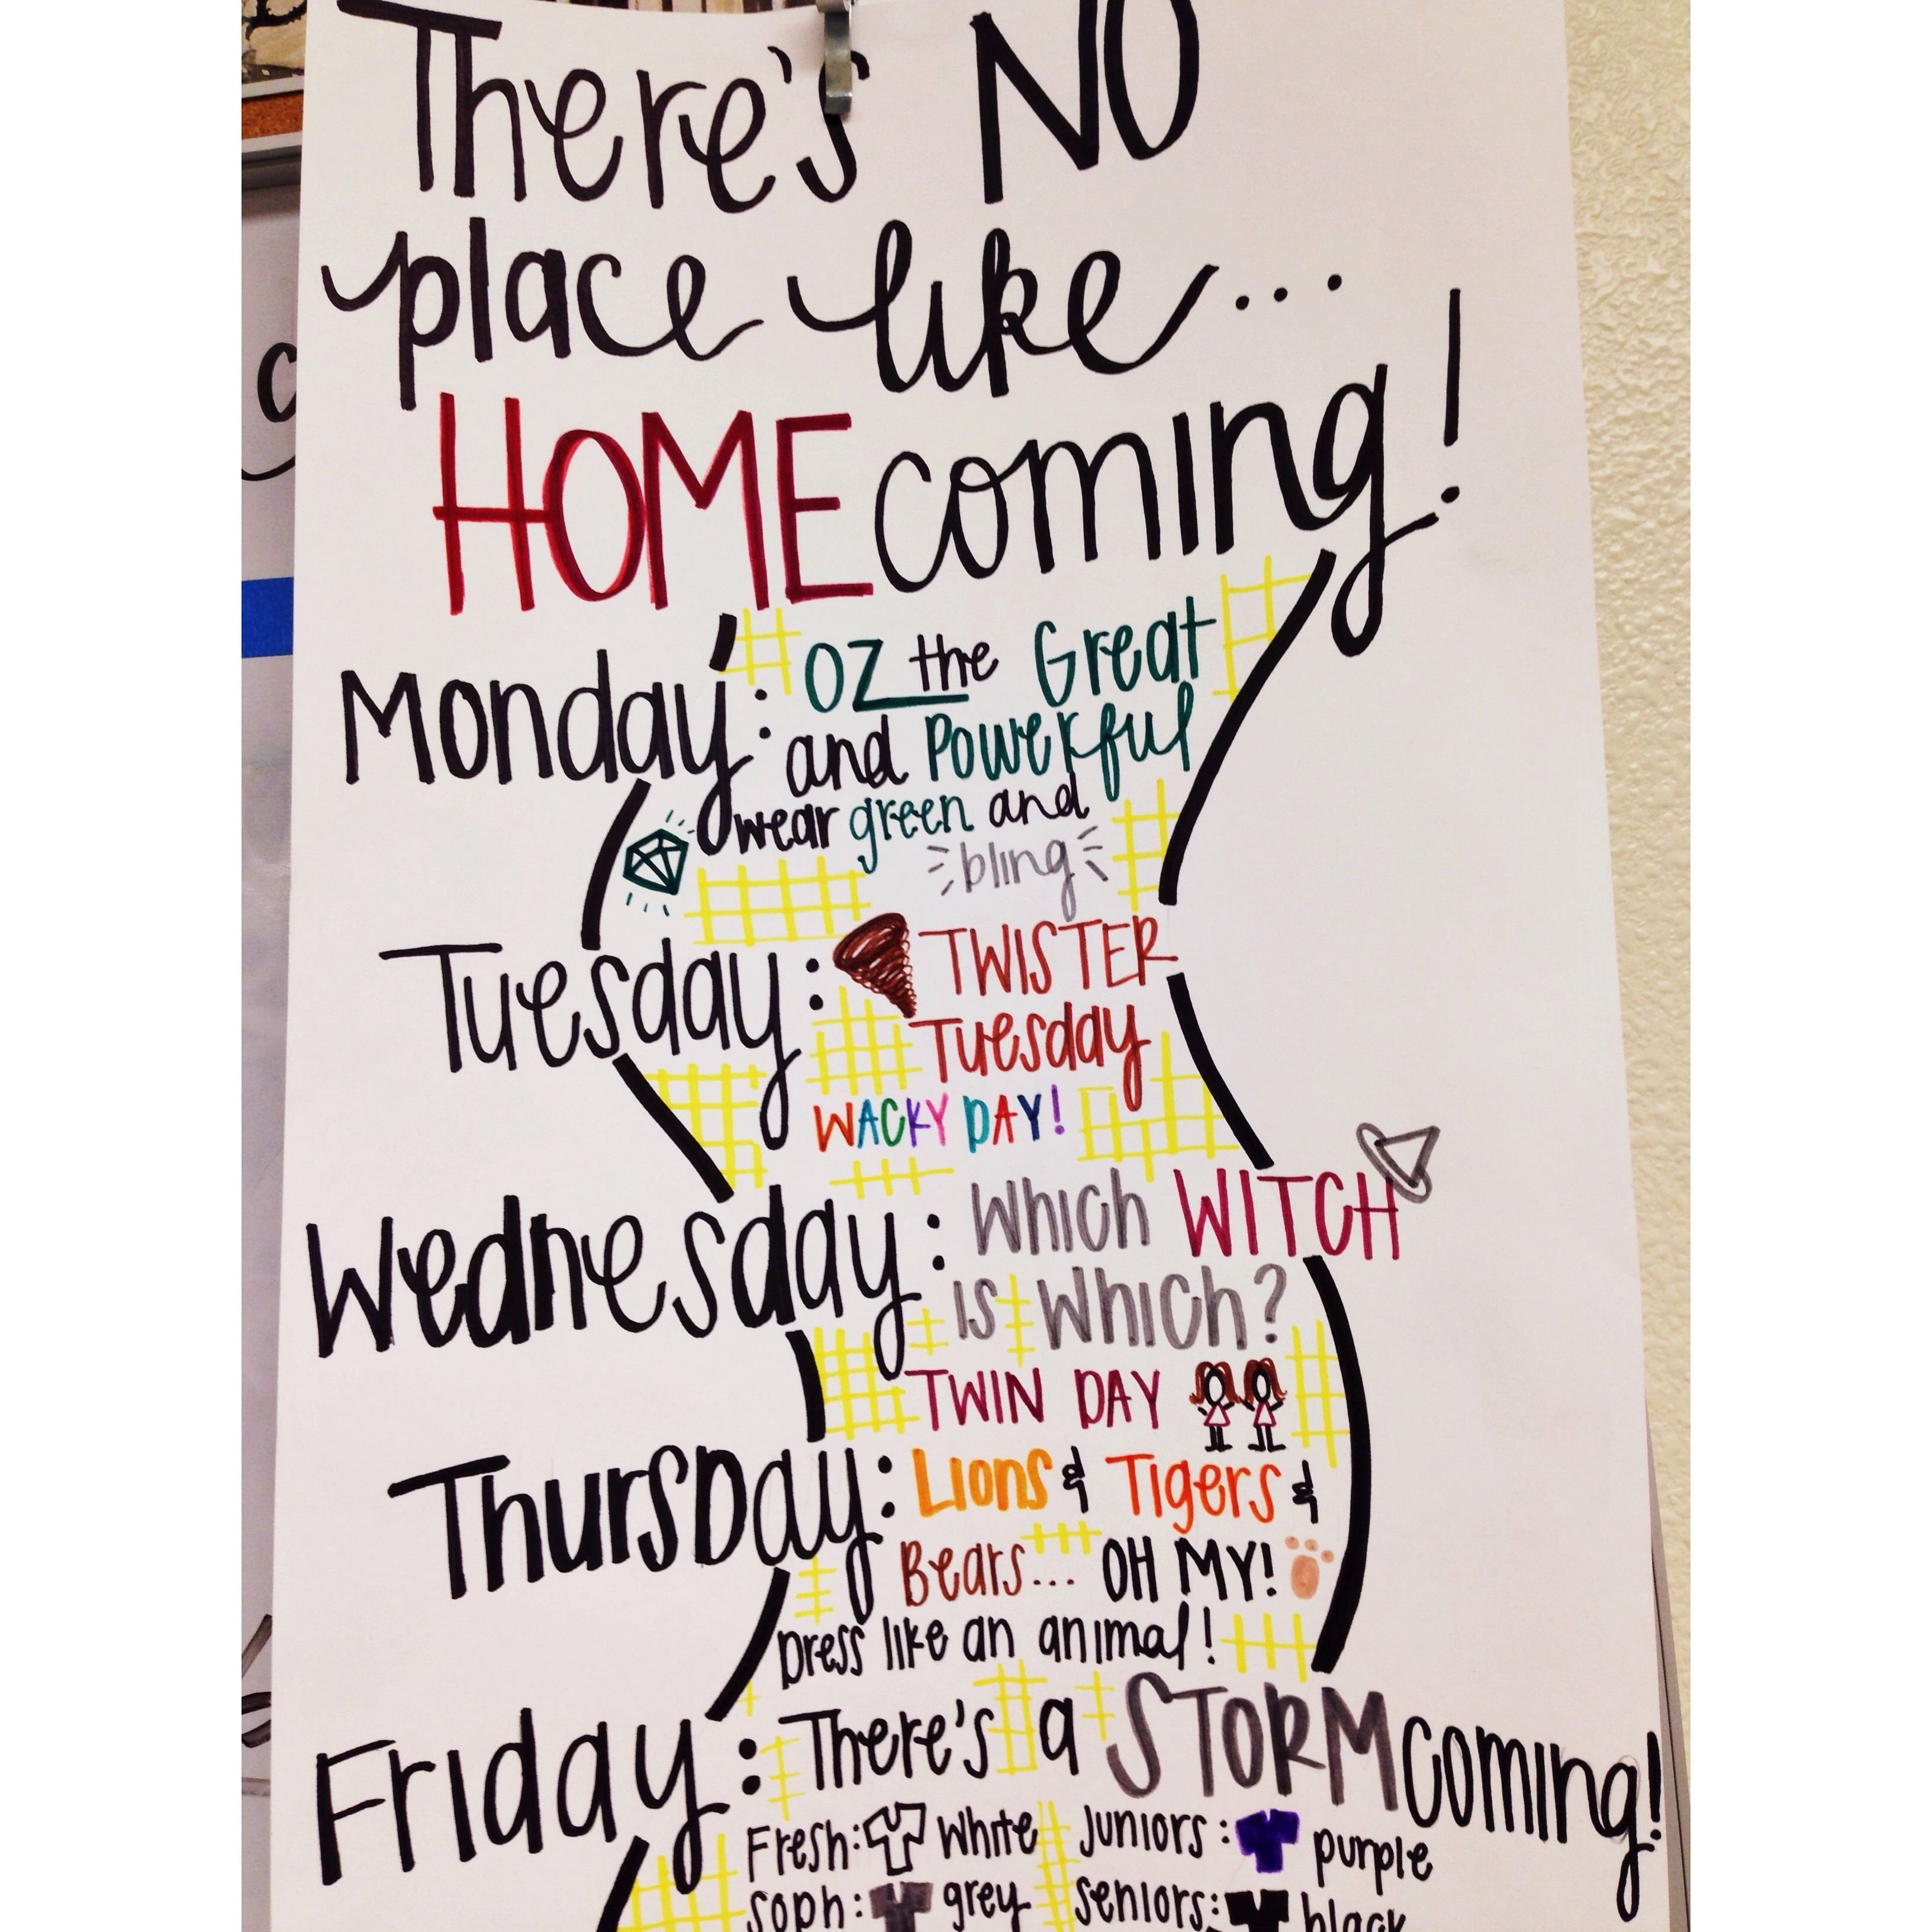 10 Gorgeous Homecoming Dress Up Day Ideas wizard of oz homecoming theme idea student council pinterest 4 2021